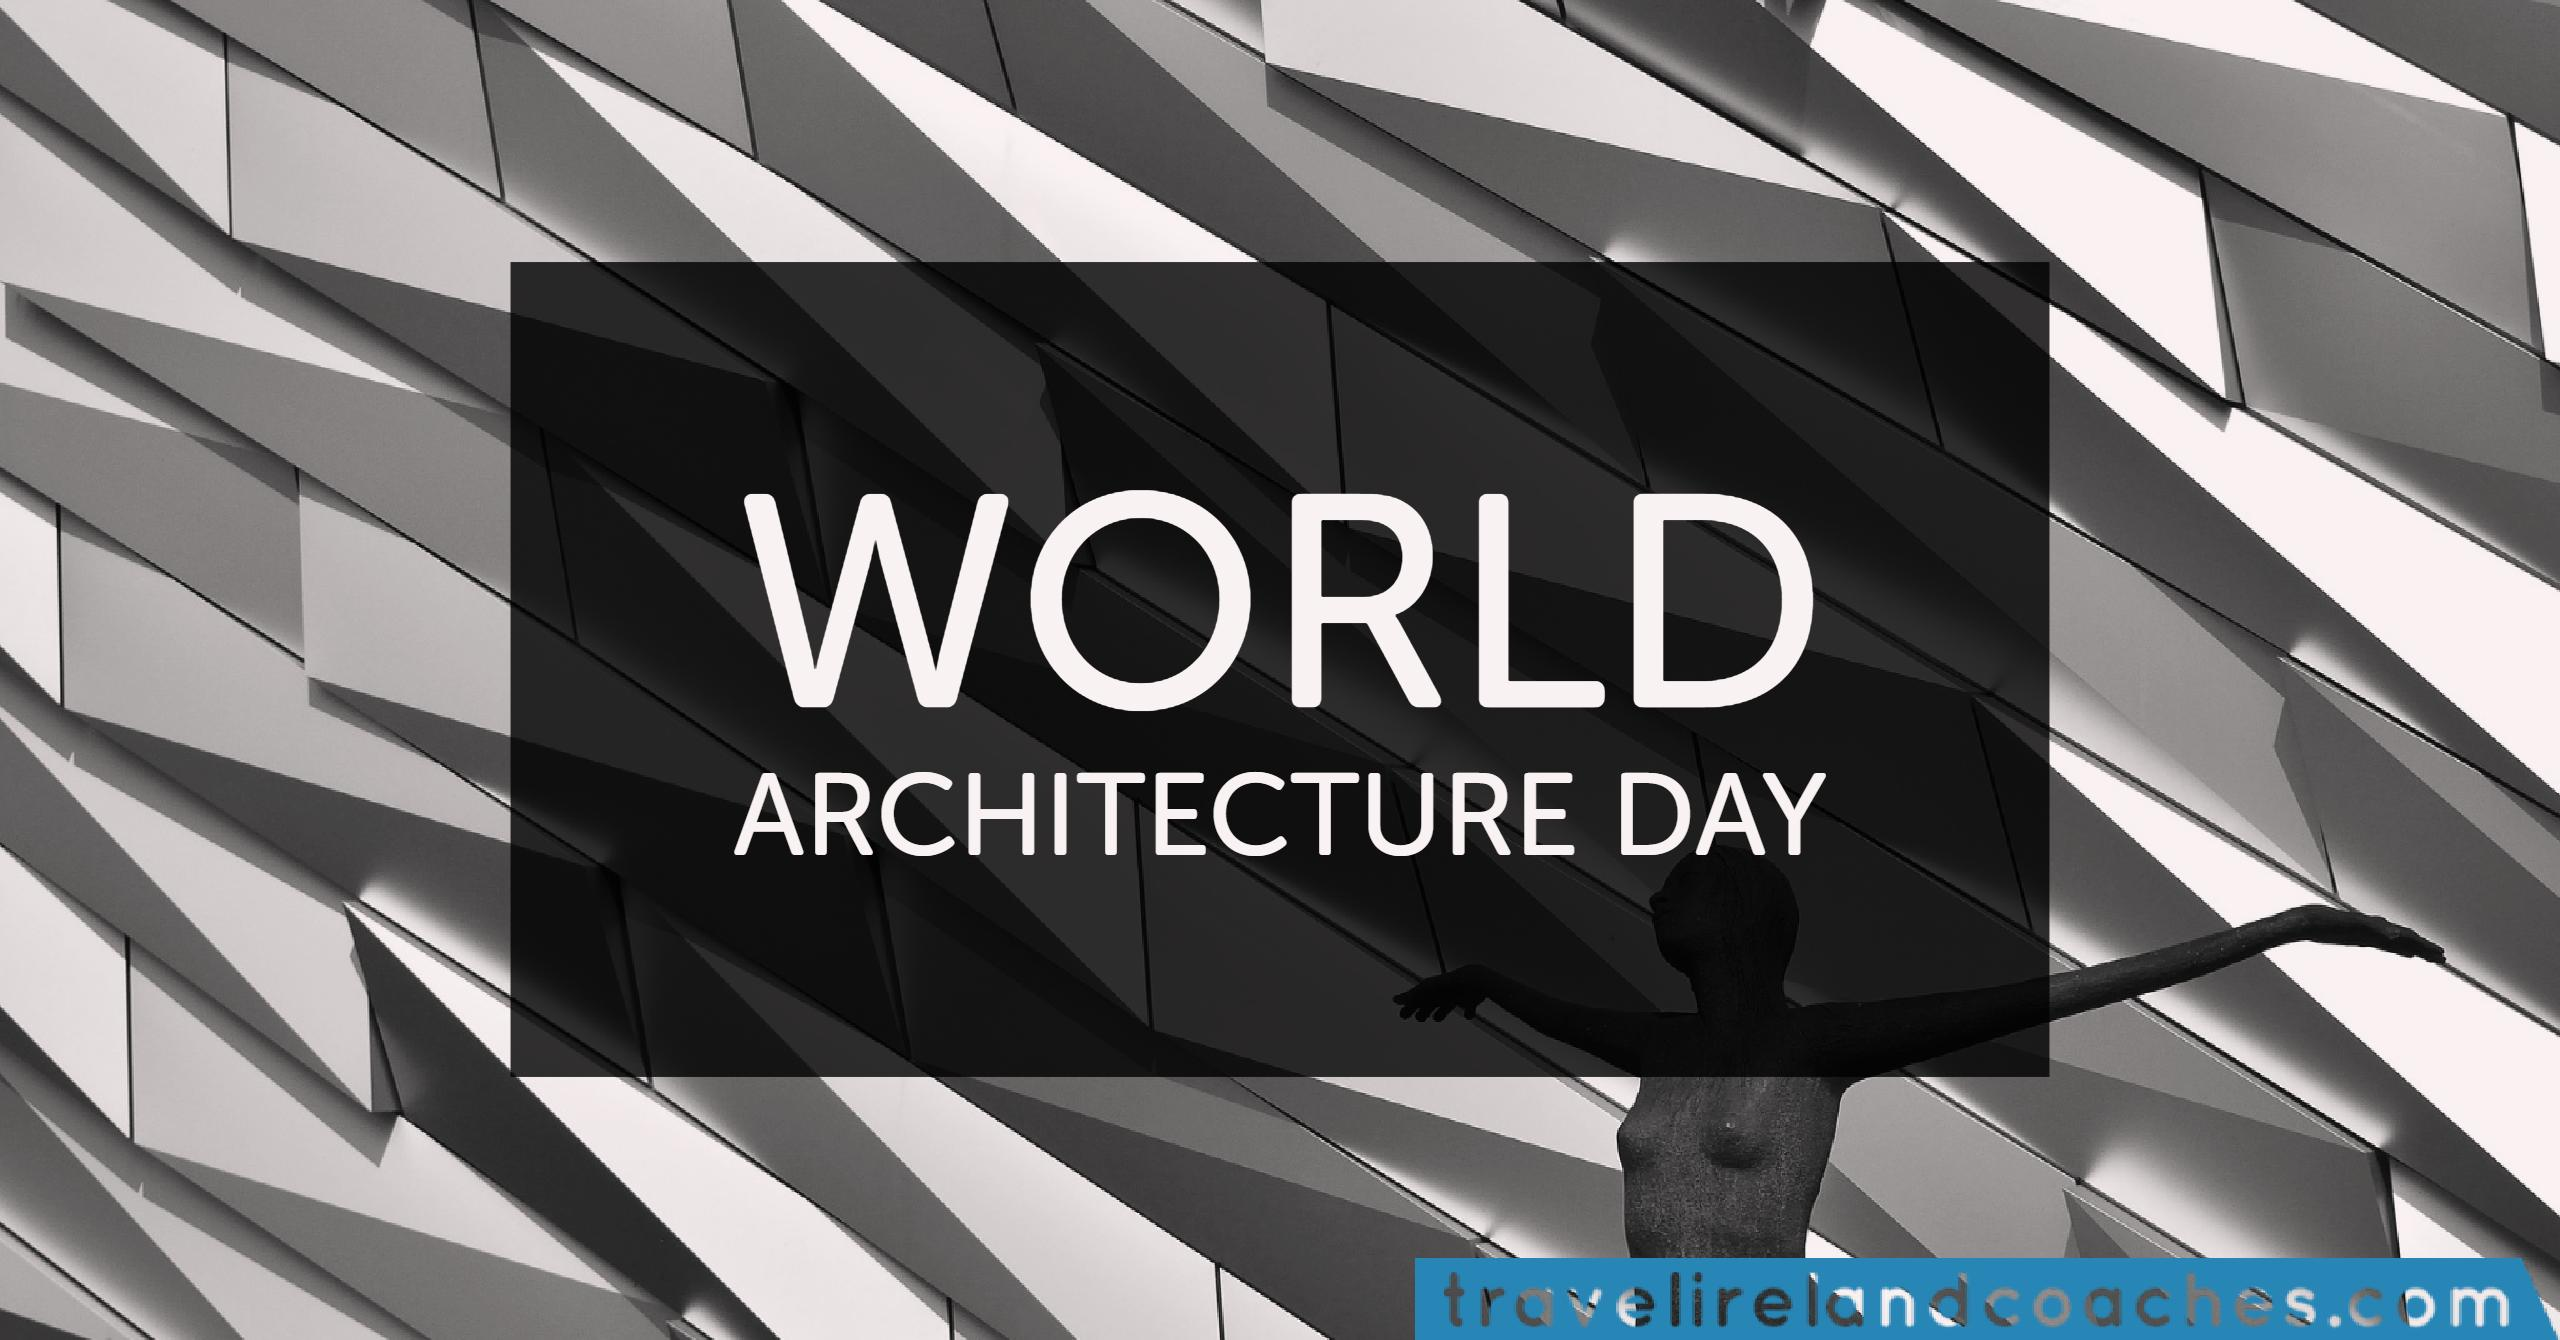 021017 World Architecture Day - Travel Ireland Coaches